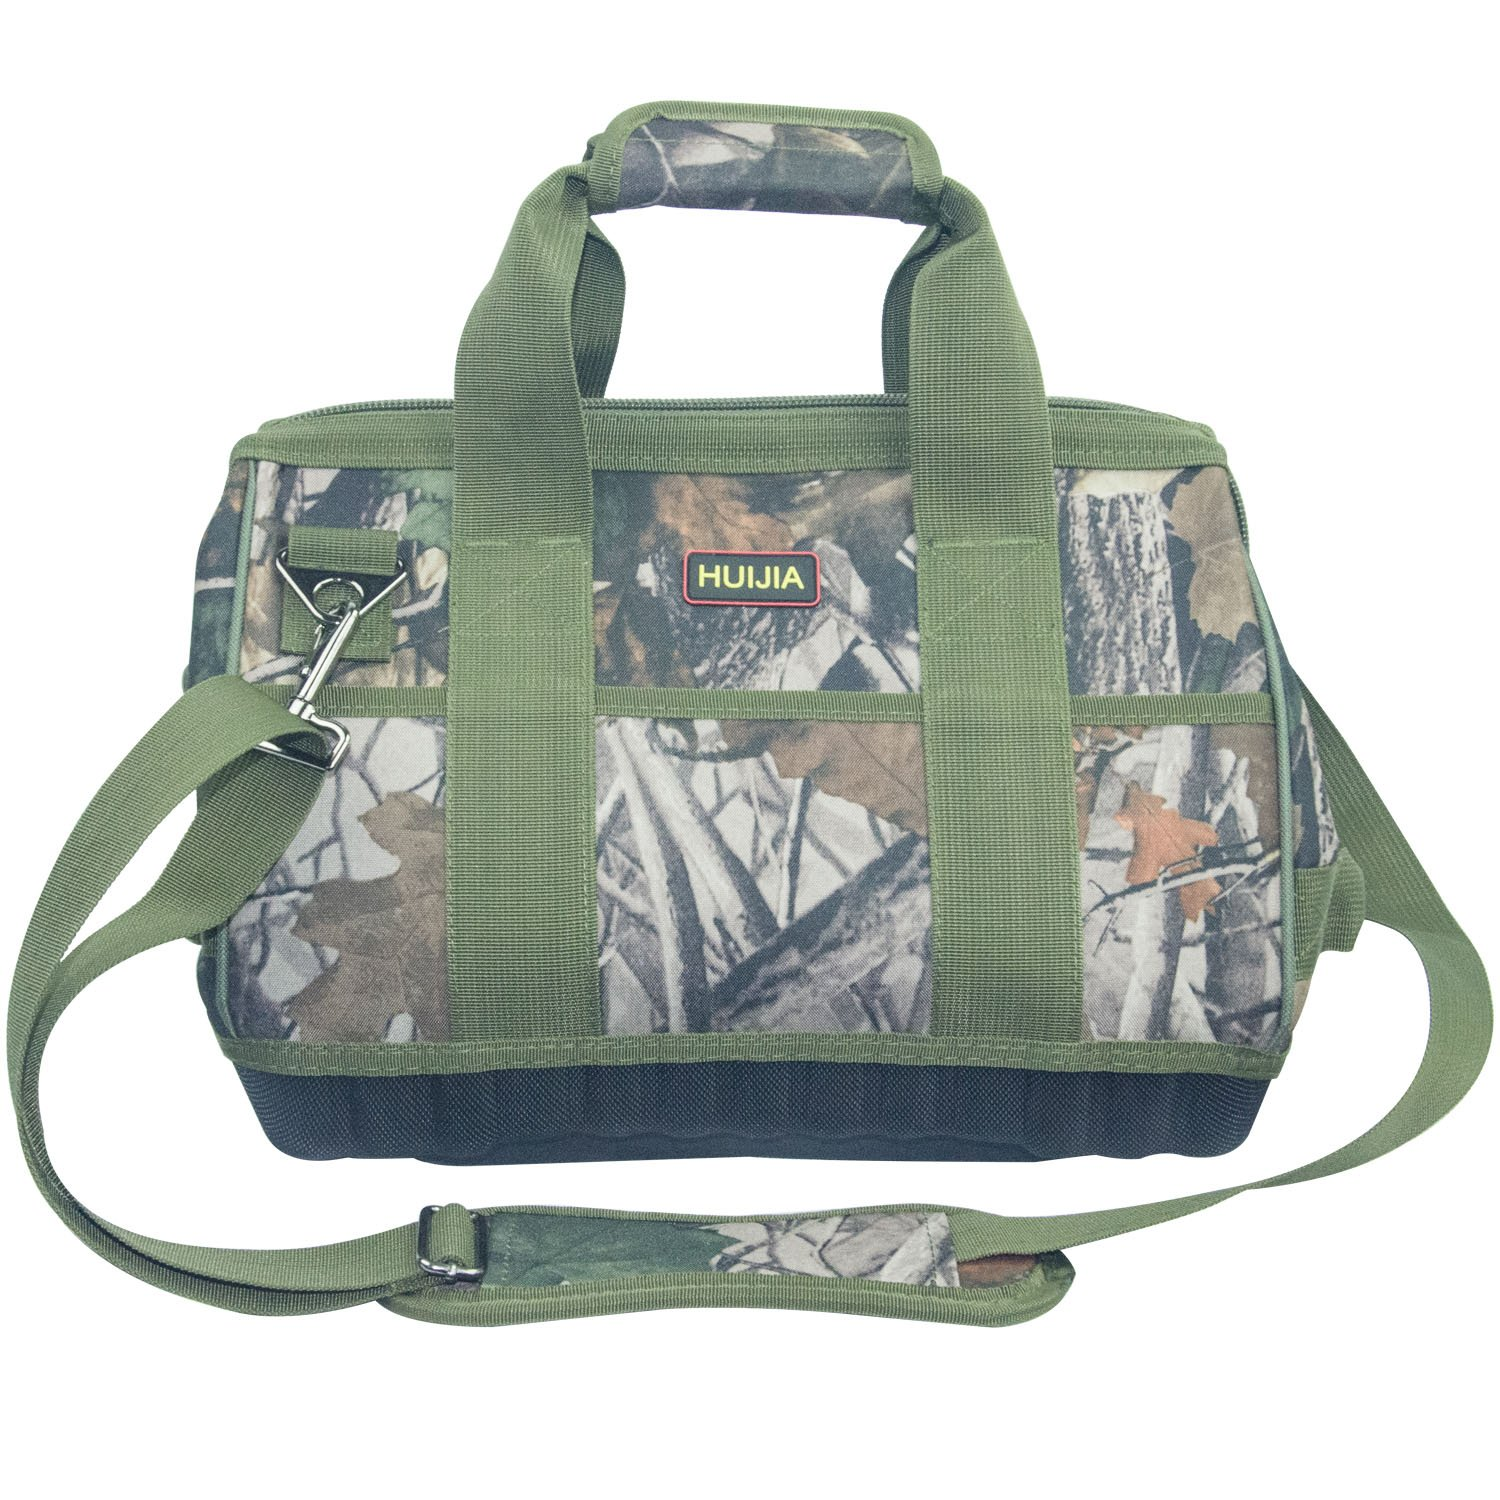 Super Heavy Duty Tool Storage Camo Bag with 4 Wear Resistant EVA Foam Base Green (M:13.4''X11''X8.7'') by HUIJIA